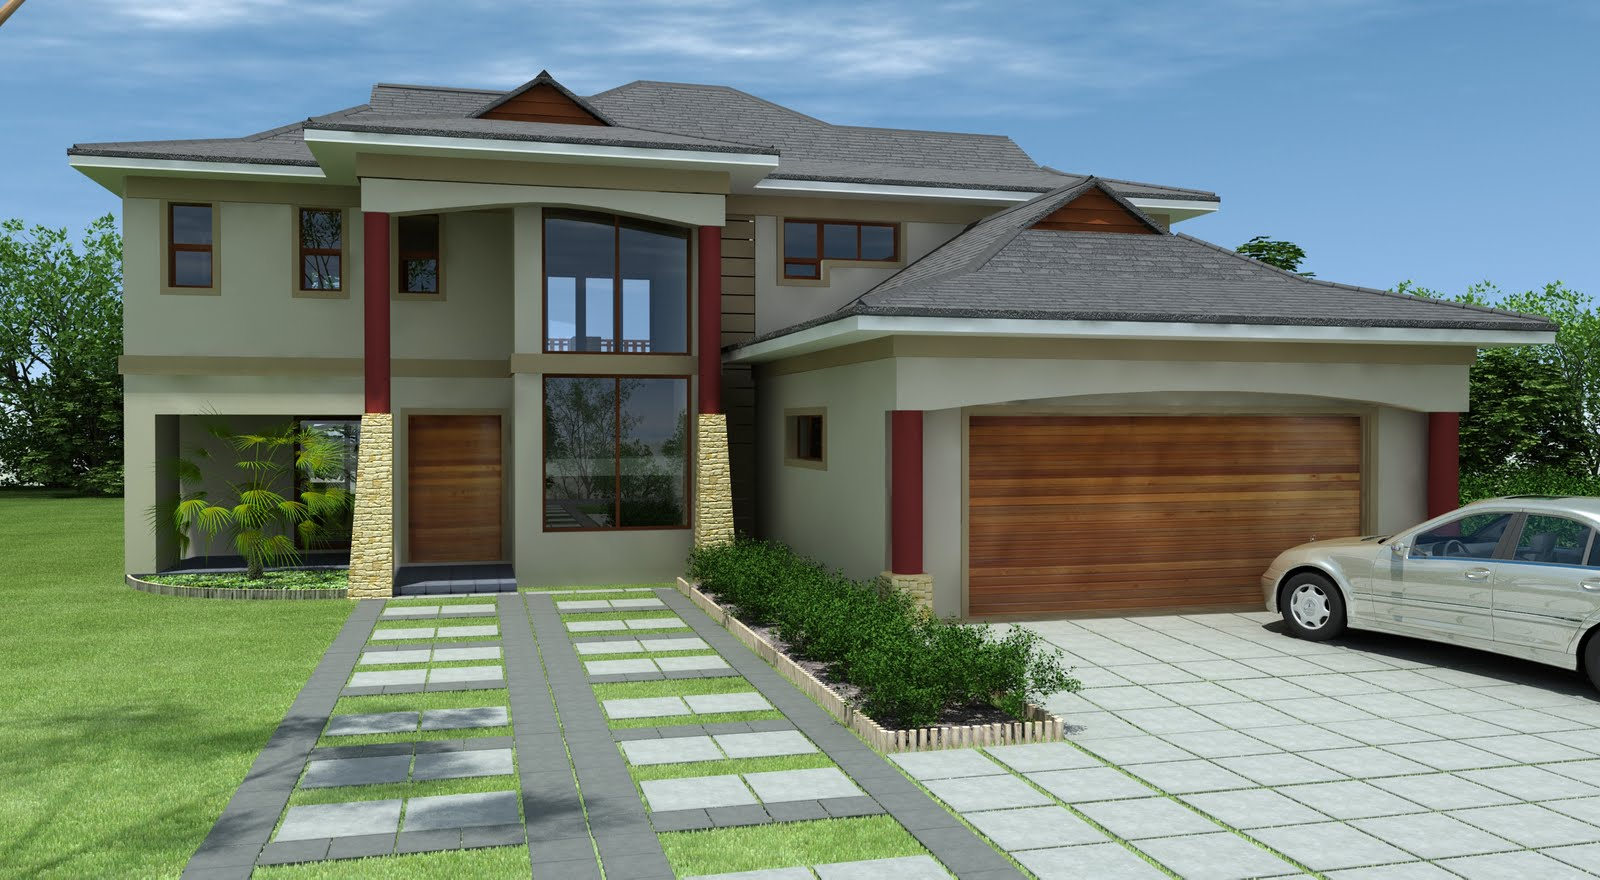 Small house designs in south africa joy studio design for Modern south african home designs